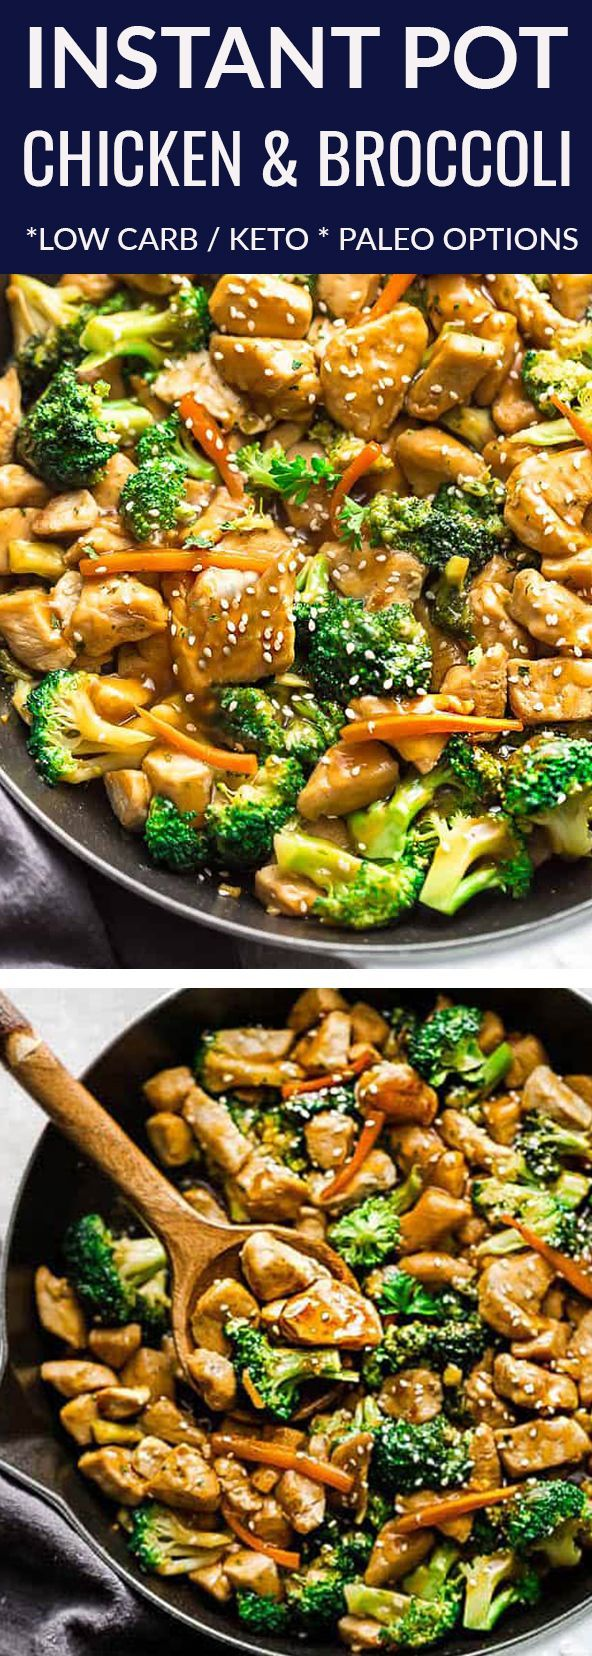 Instant Pot Chicken And Broccoli Stir Fry A Popular Chinese Takeout Favor Healthy Instant Pot Recipes Instant Pot Recipes Chicken Instant Pot Dinner Recipes